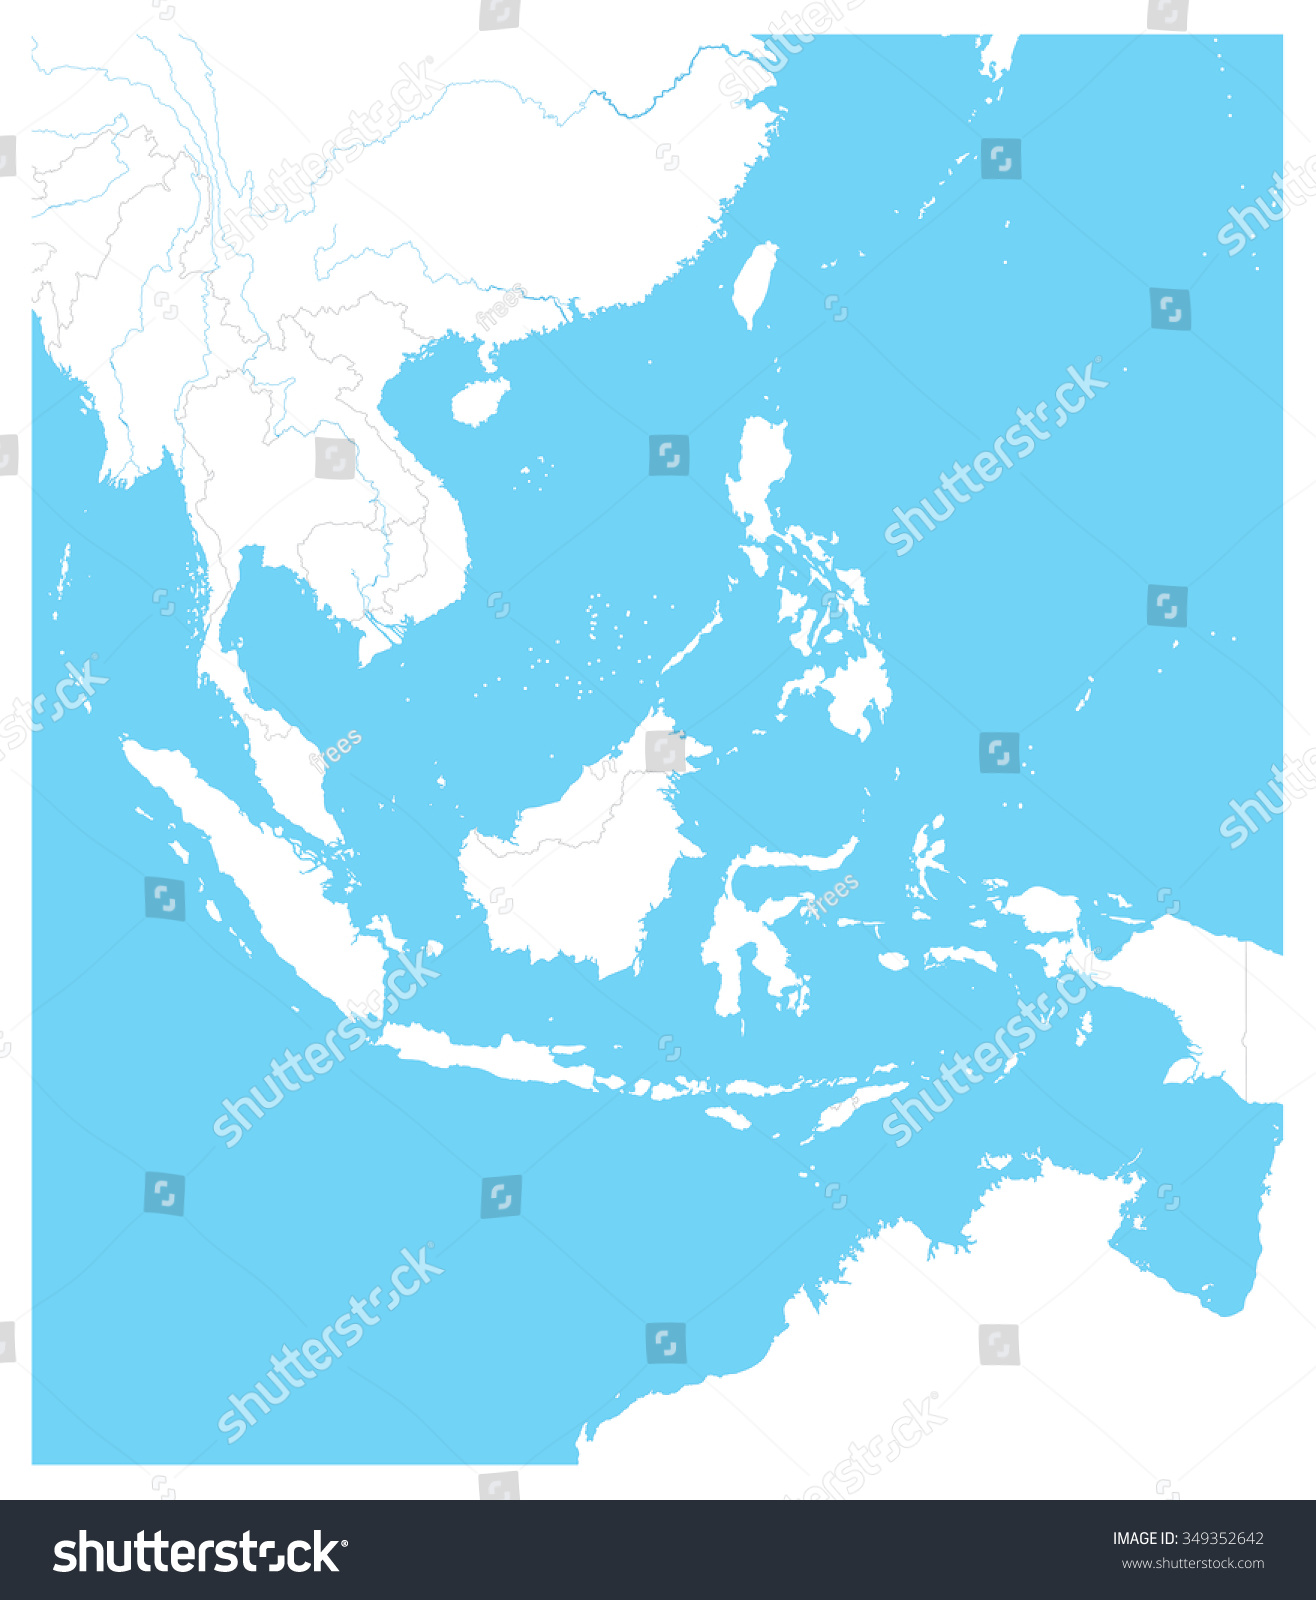 Picture of: Southeast Asia Outline Map Vector Illustration Stock Vector Royalty Free 349352642